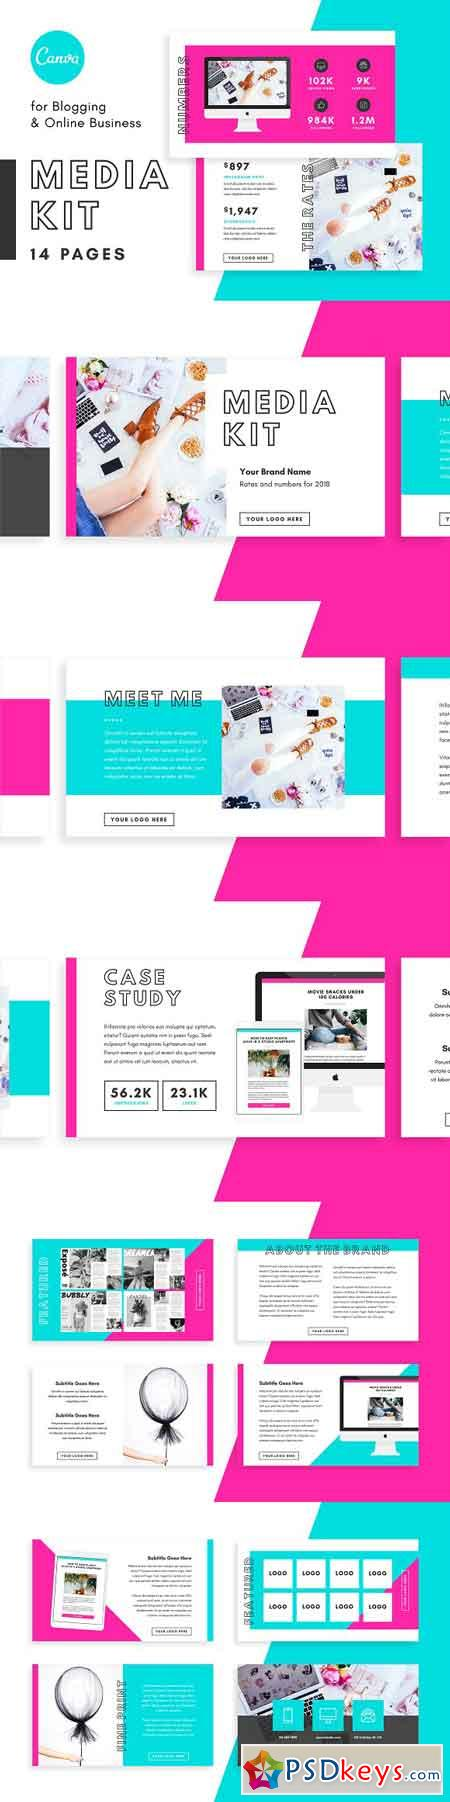 Media Kit Proposal Bloggers Canva 2741670